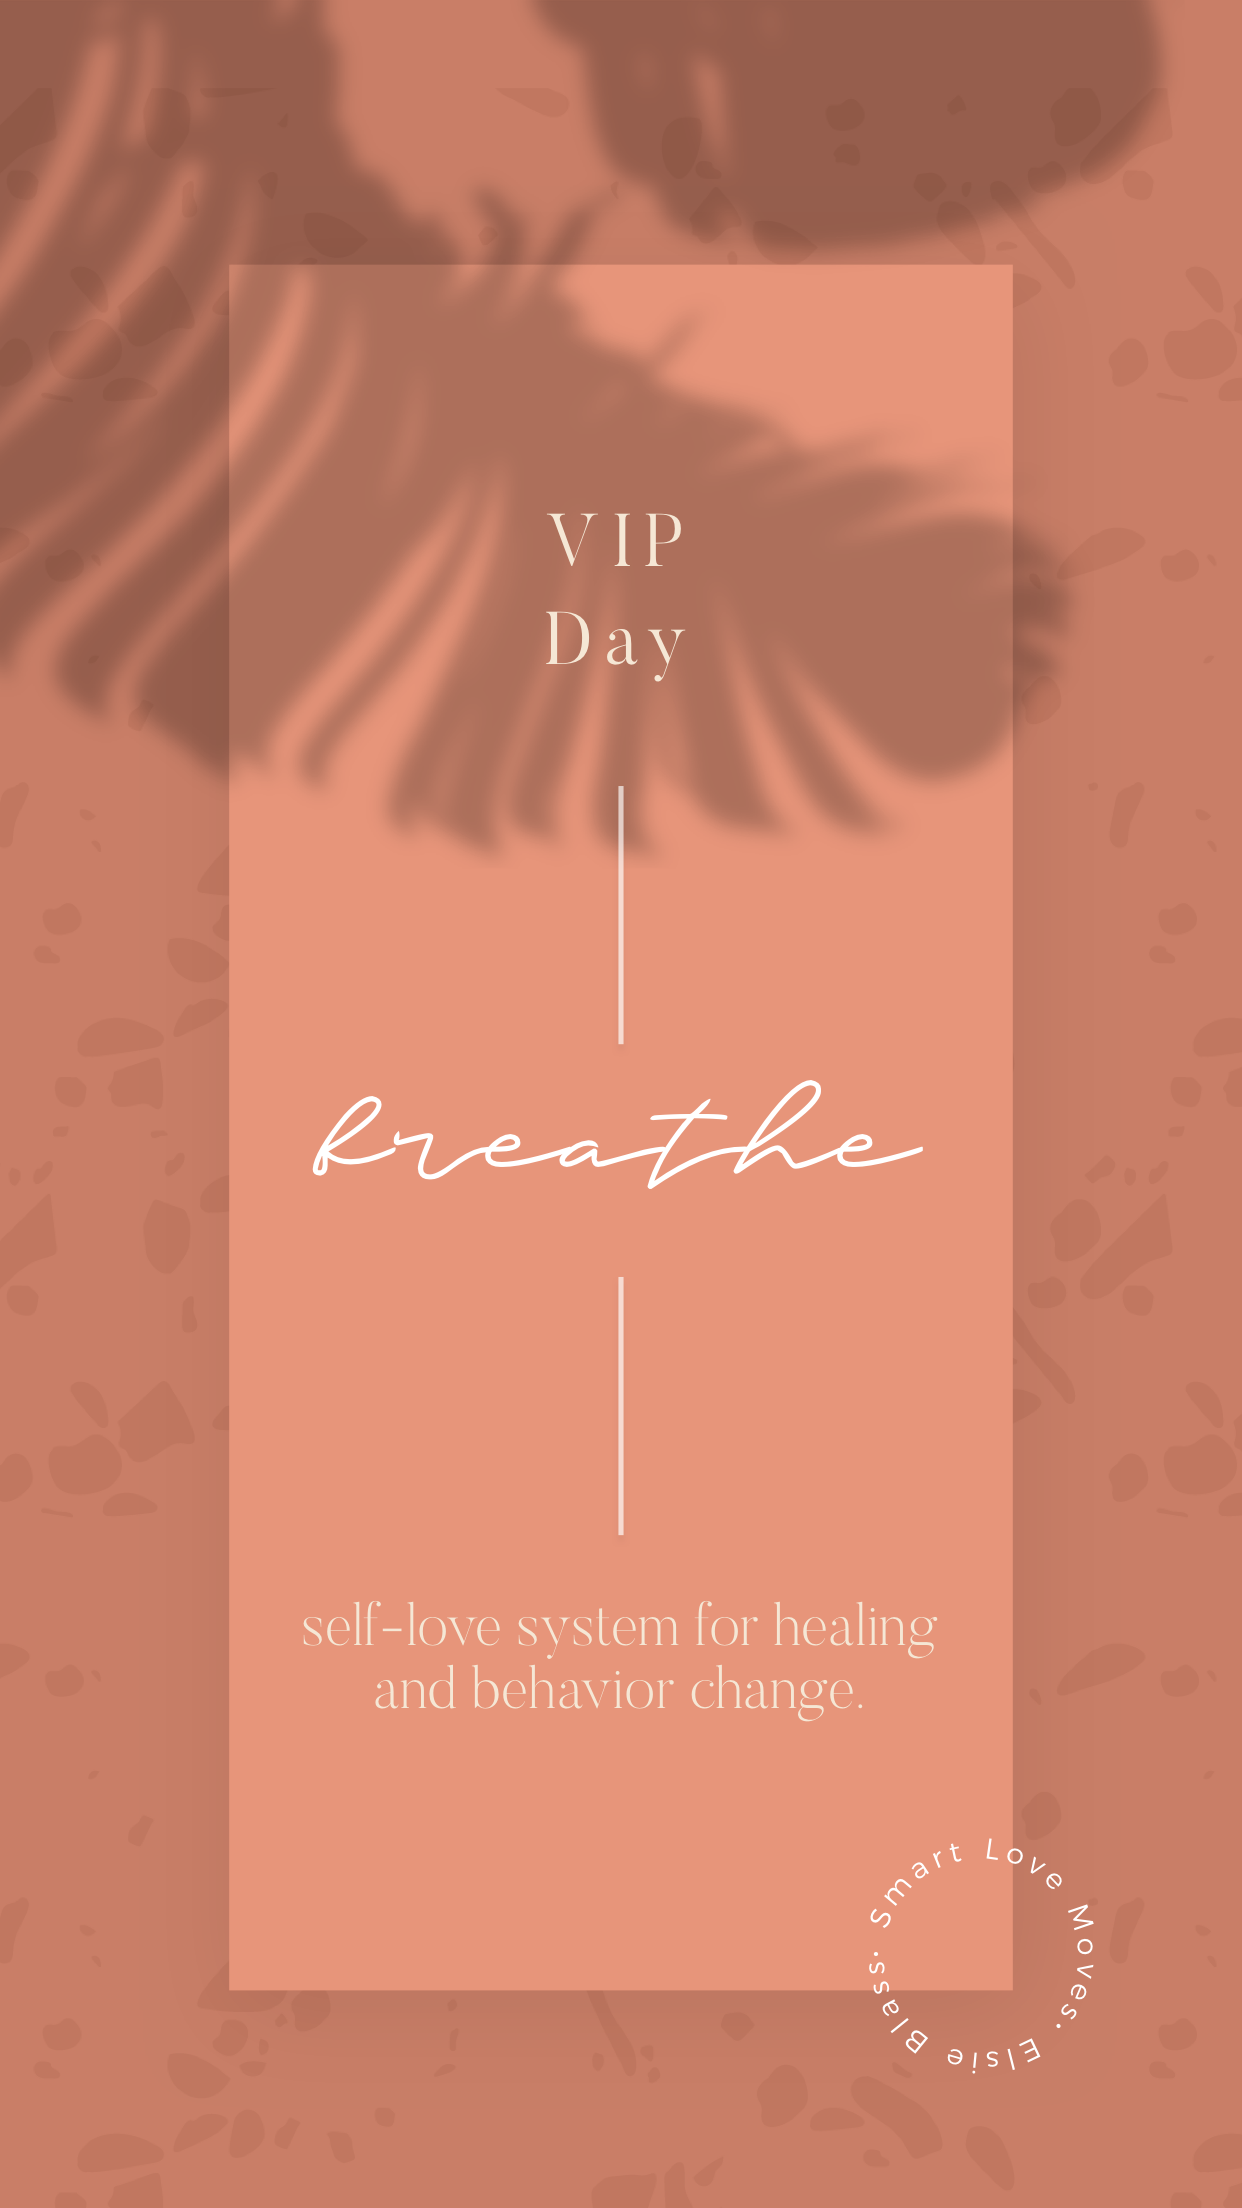 selflove vip day.PNG